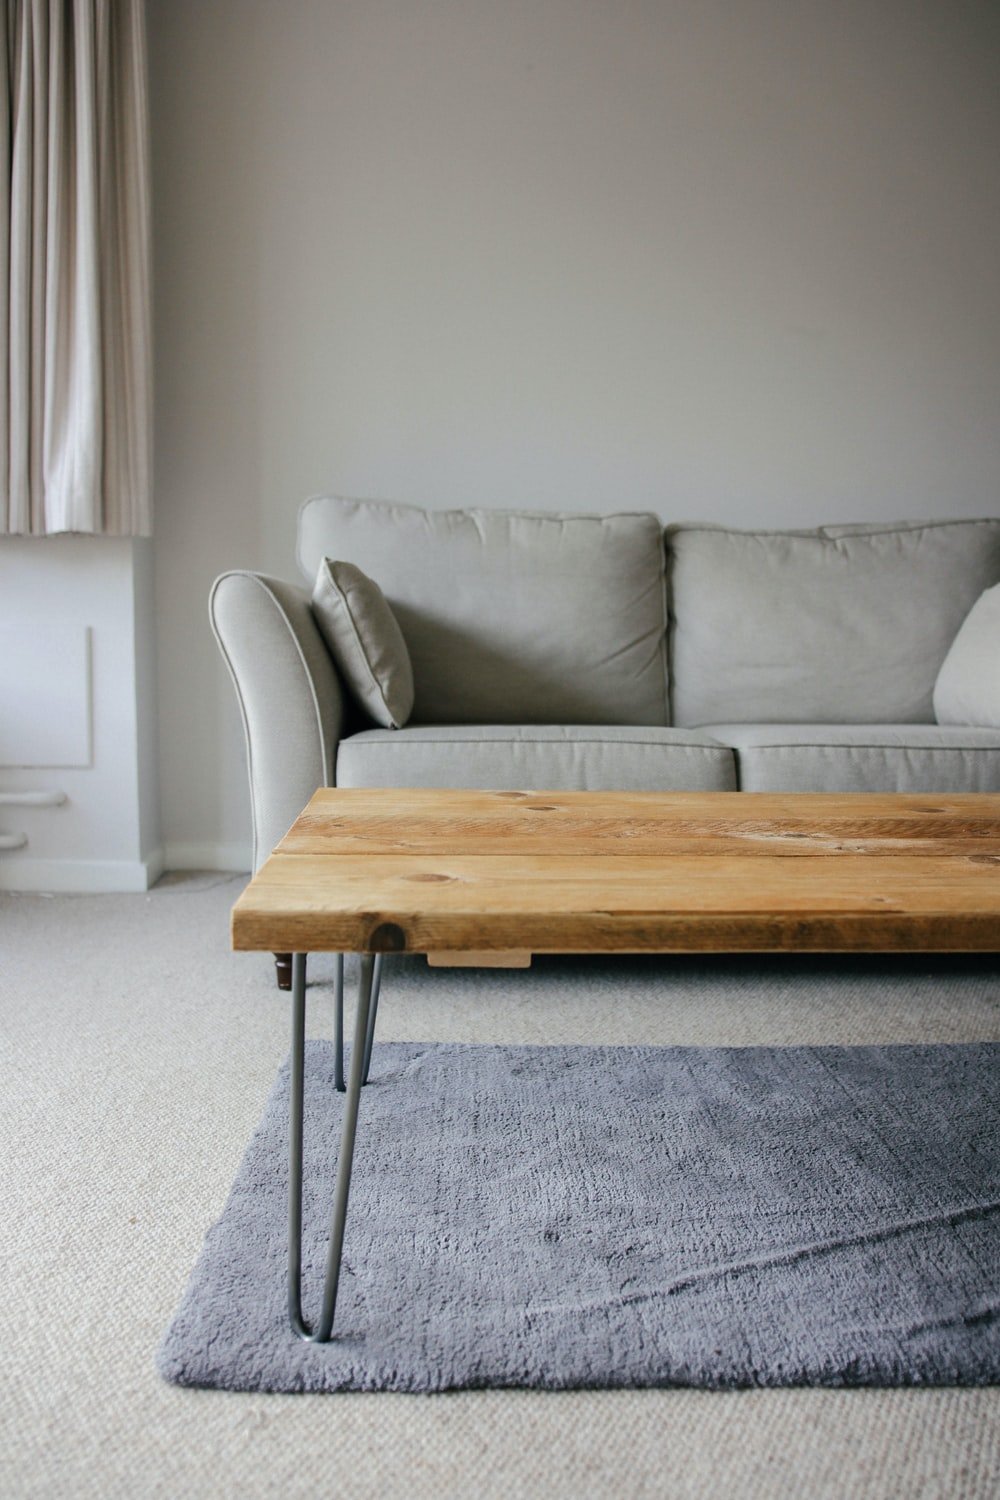 brown wooden table beside white couch